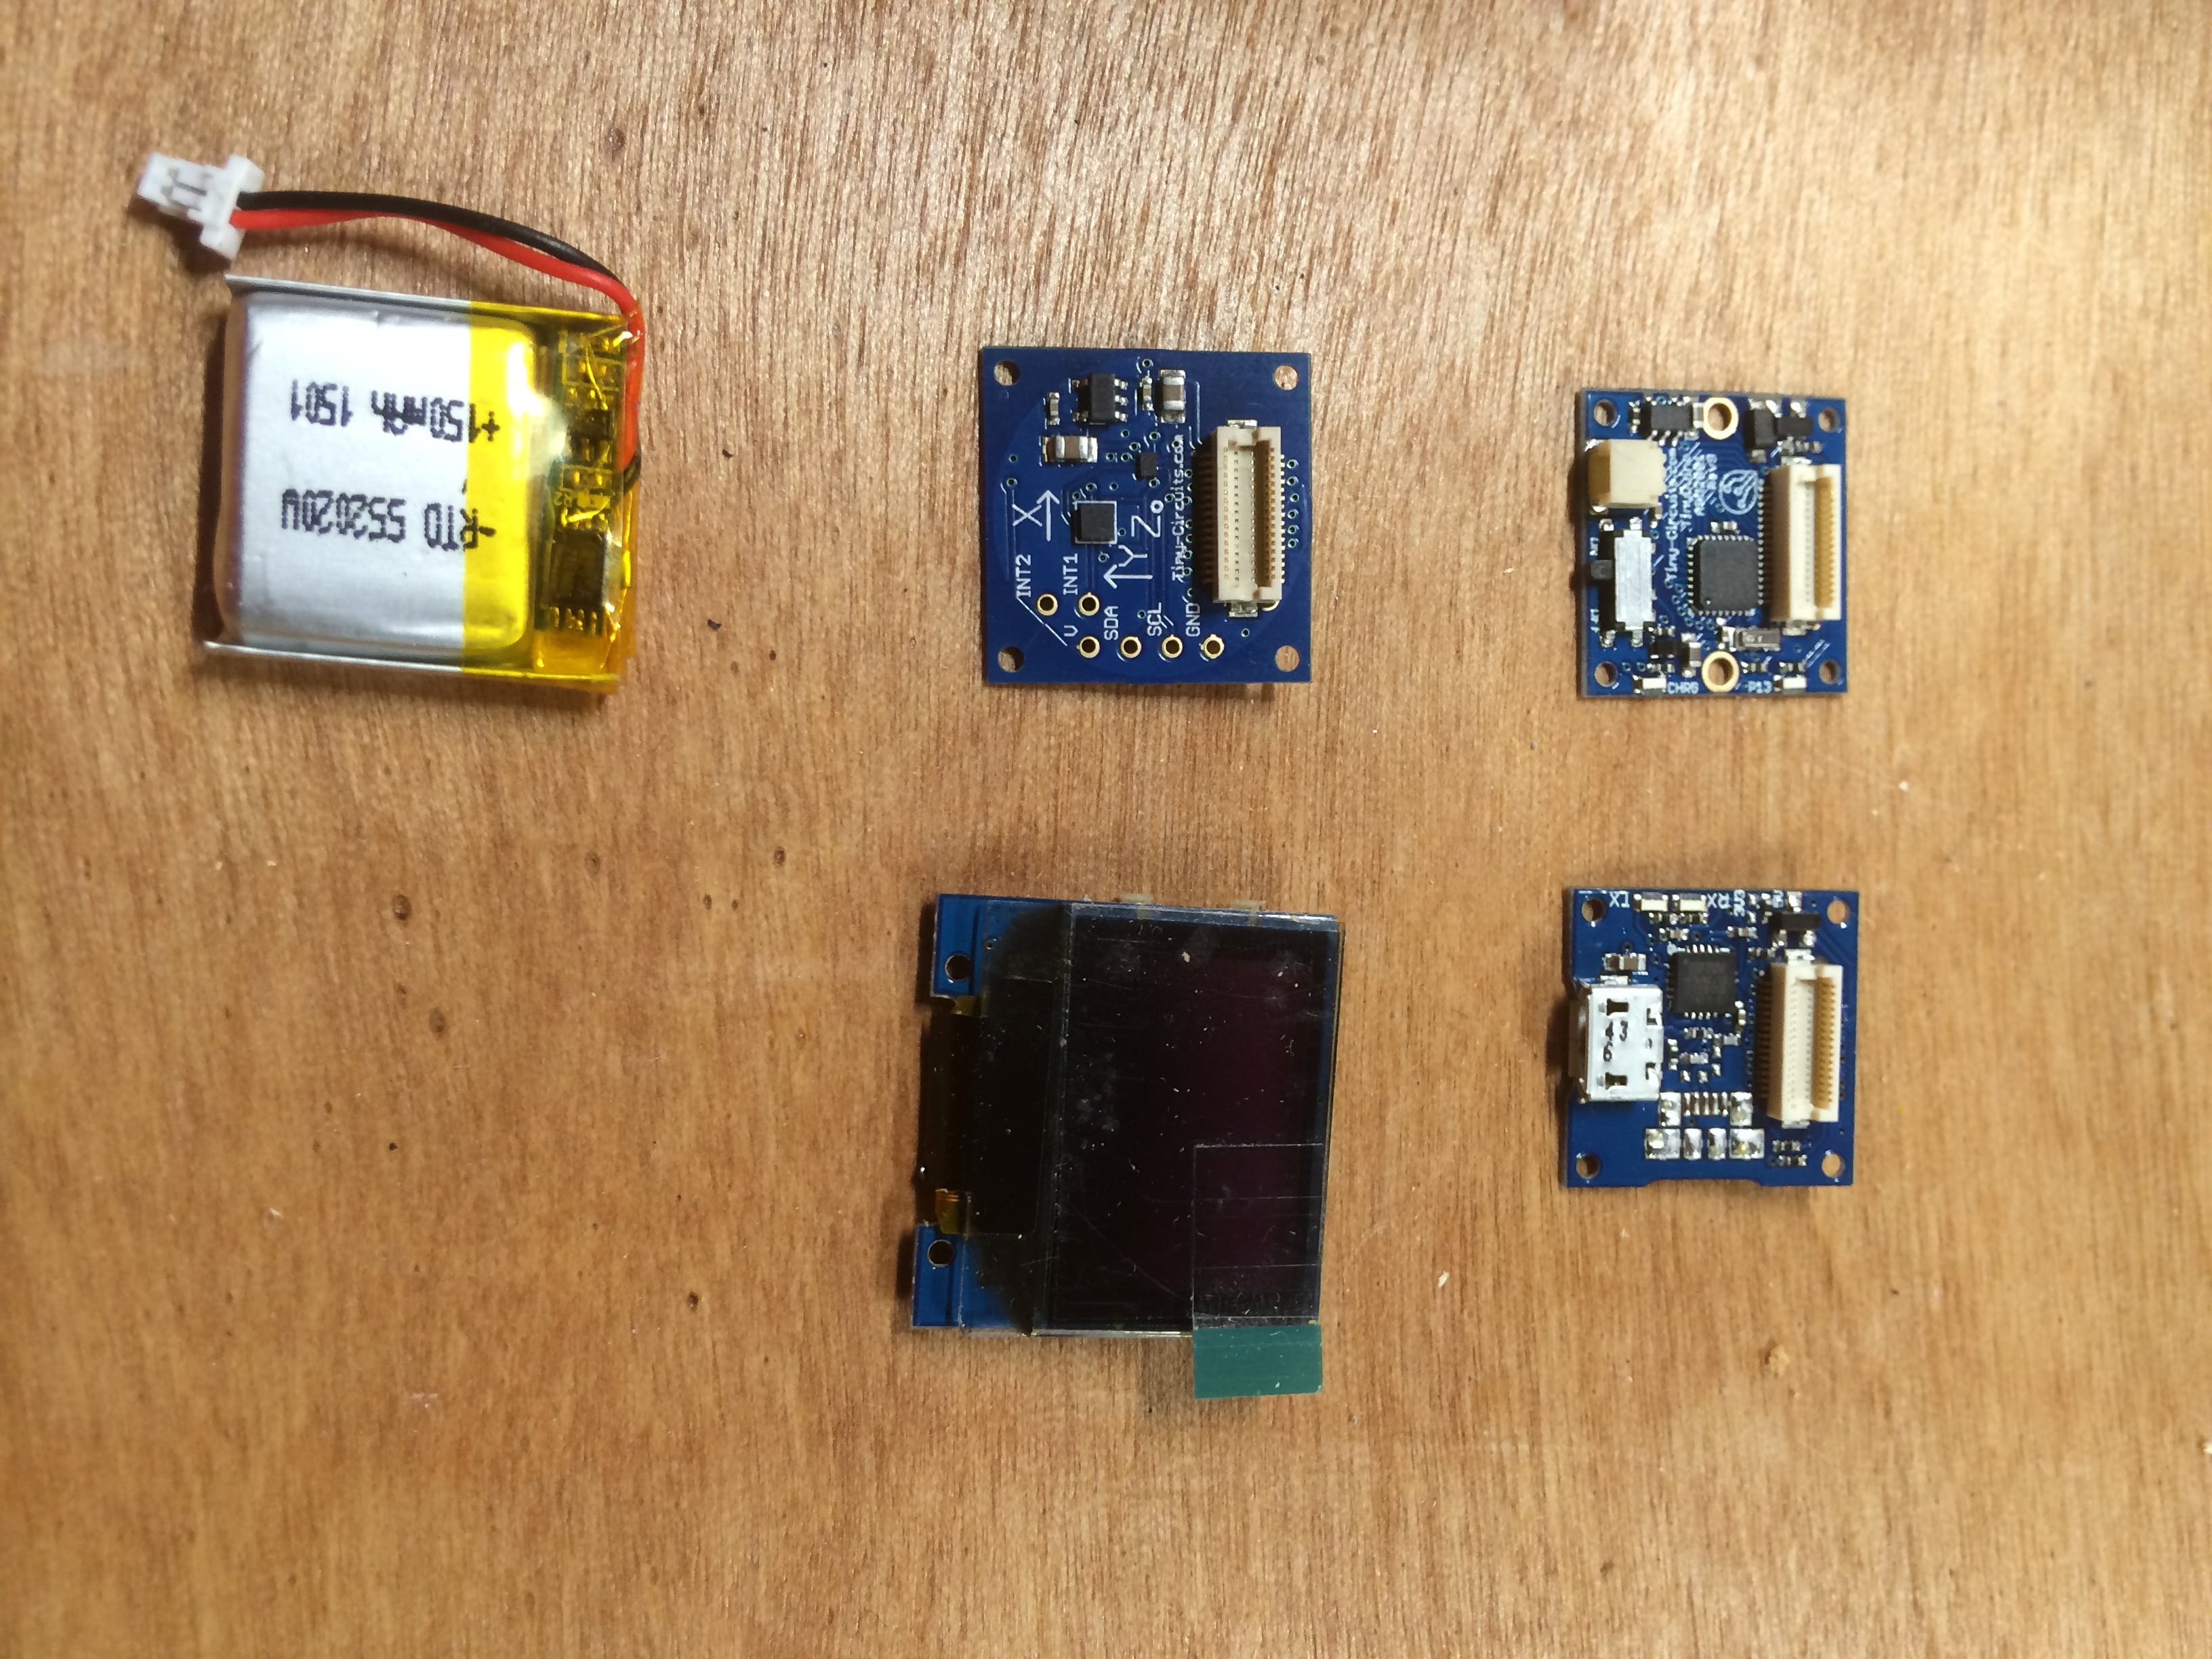 Clockwise from top left: USB TinyShield, TinyScreen, LiPo Battery, Accelerometer TinyShield, TinyDuino LiPo